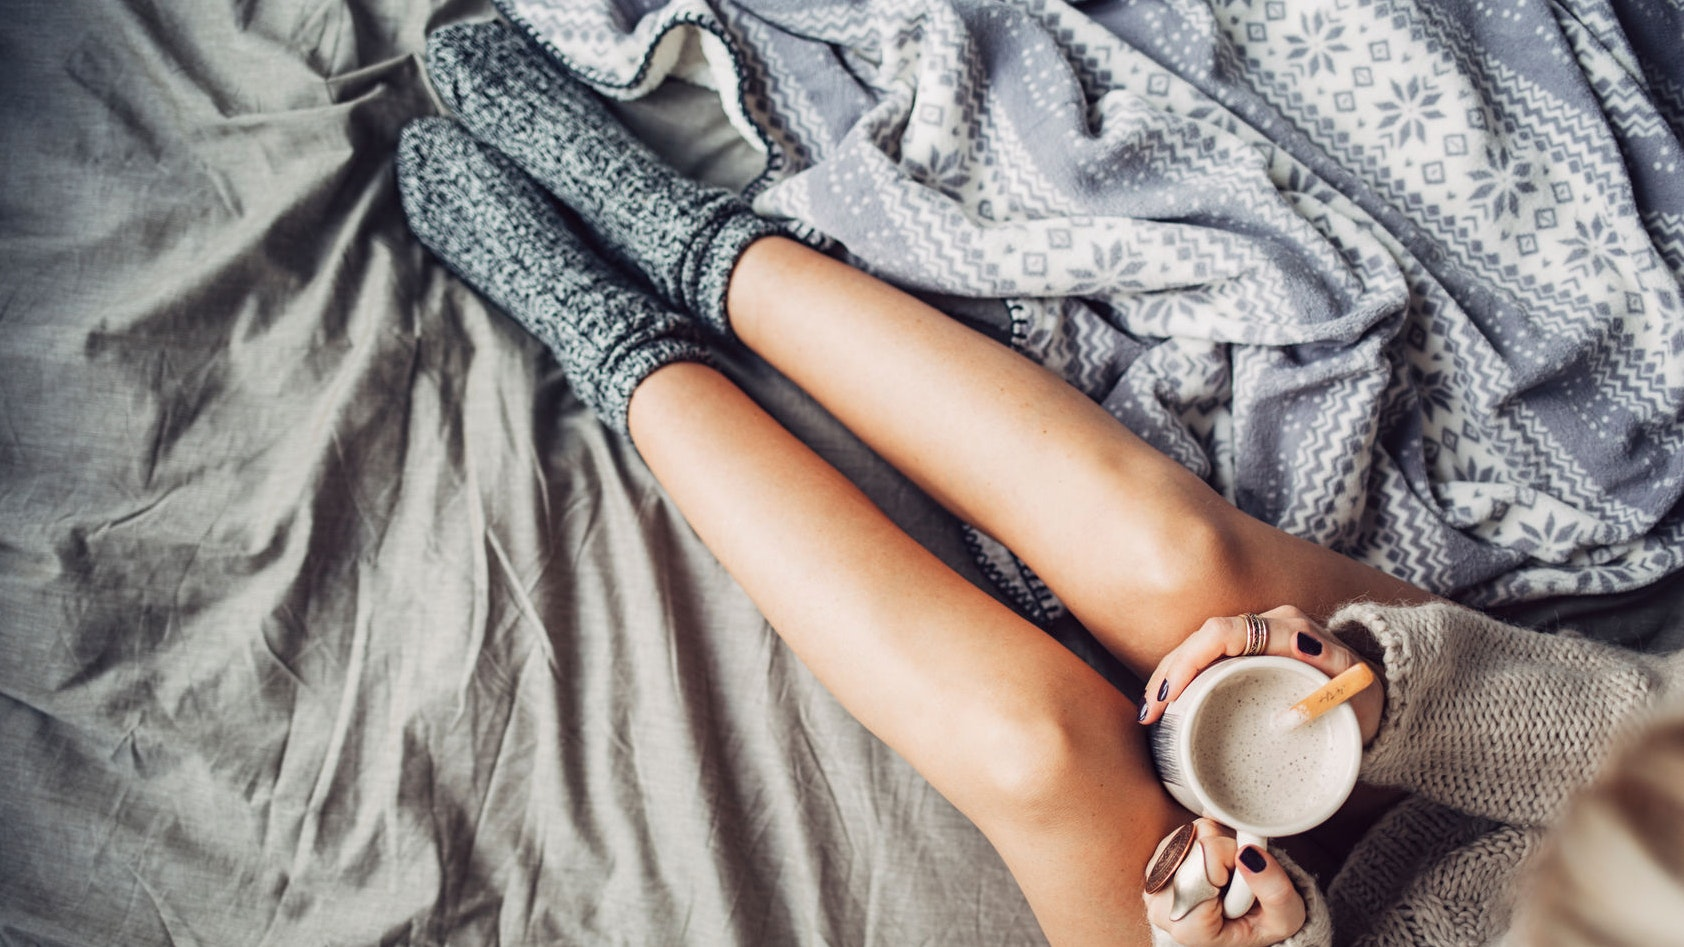 Show Your Legs Some Love! How to Fight Age Spots, Sagging, Varicose Veins, and More